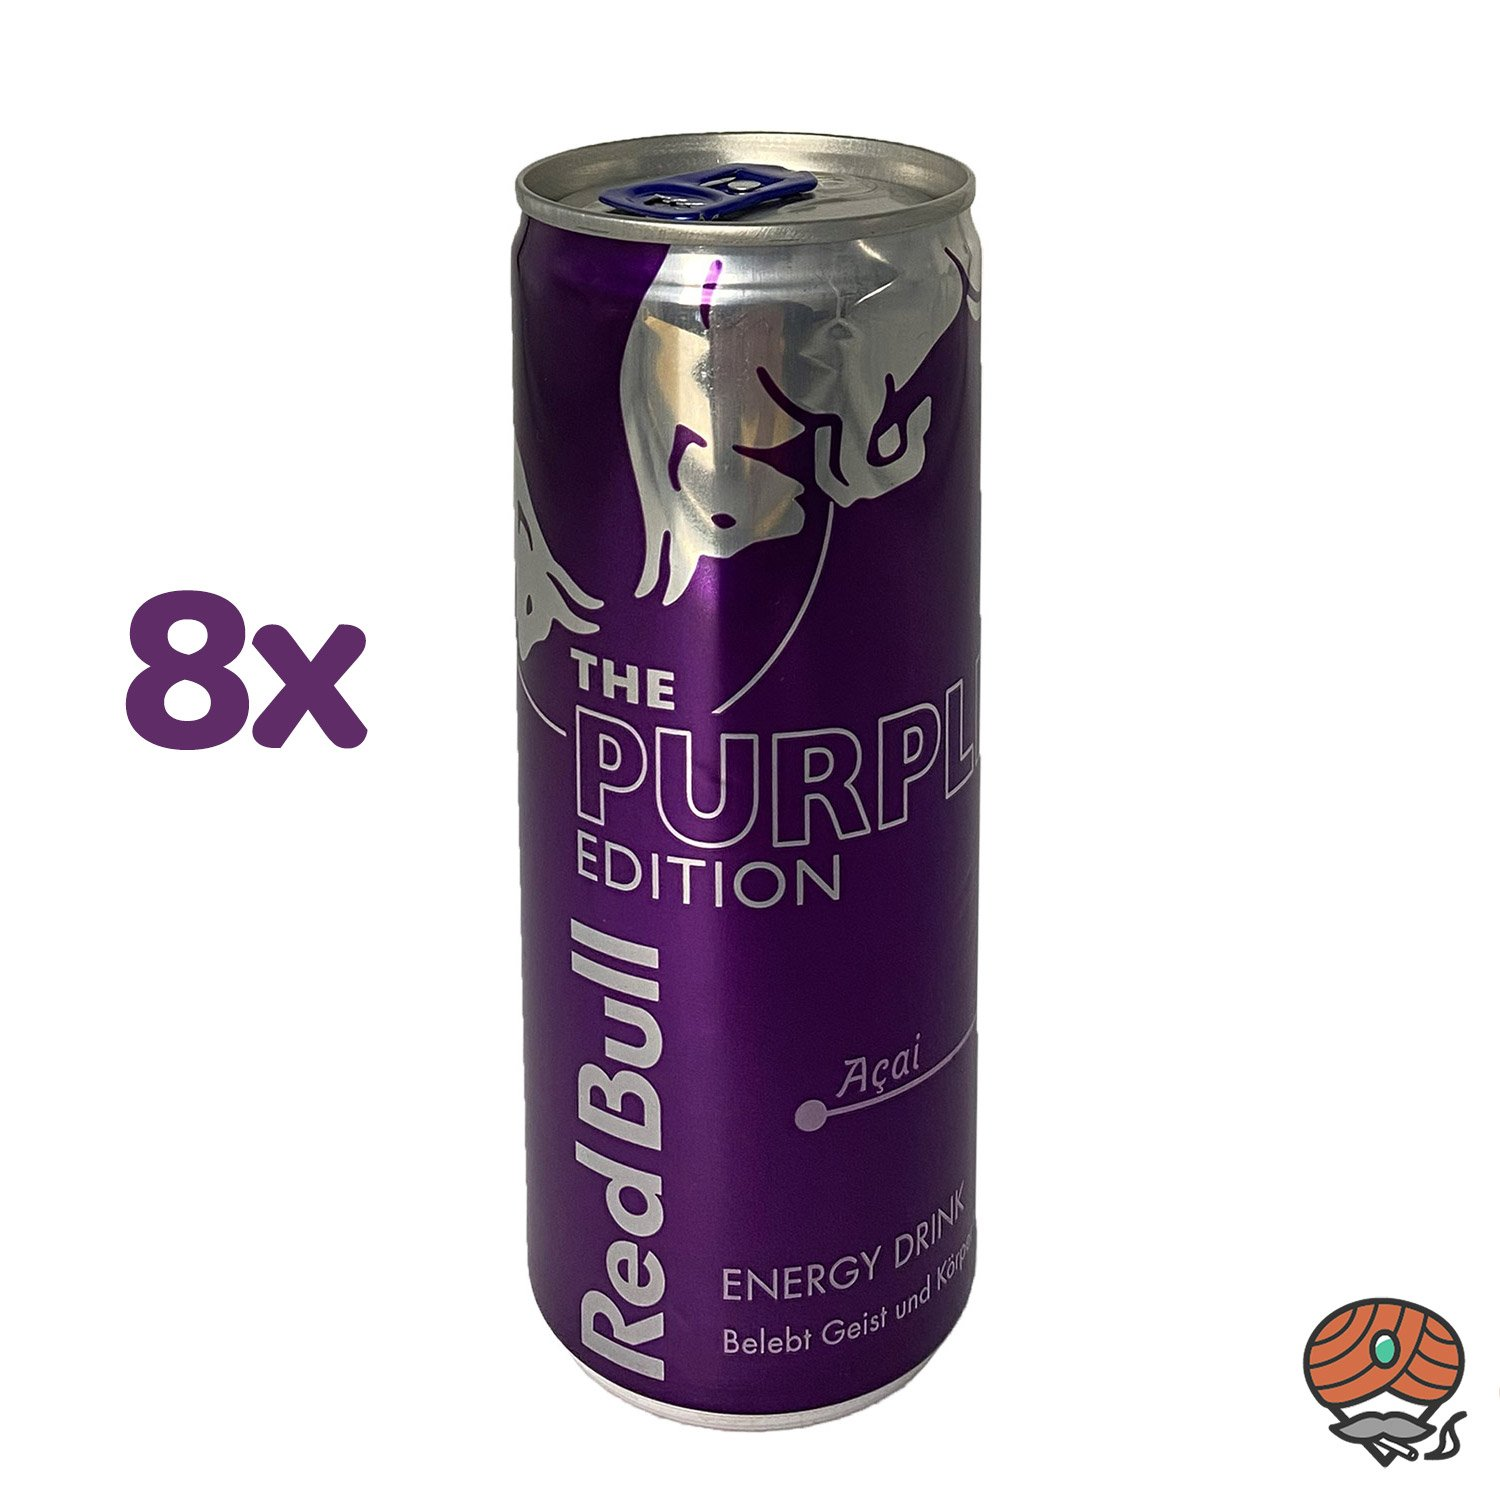 8 x Red Bull Energy Drink THE PURPLE EDITION, Açai-Beere, 250 ml Dose